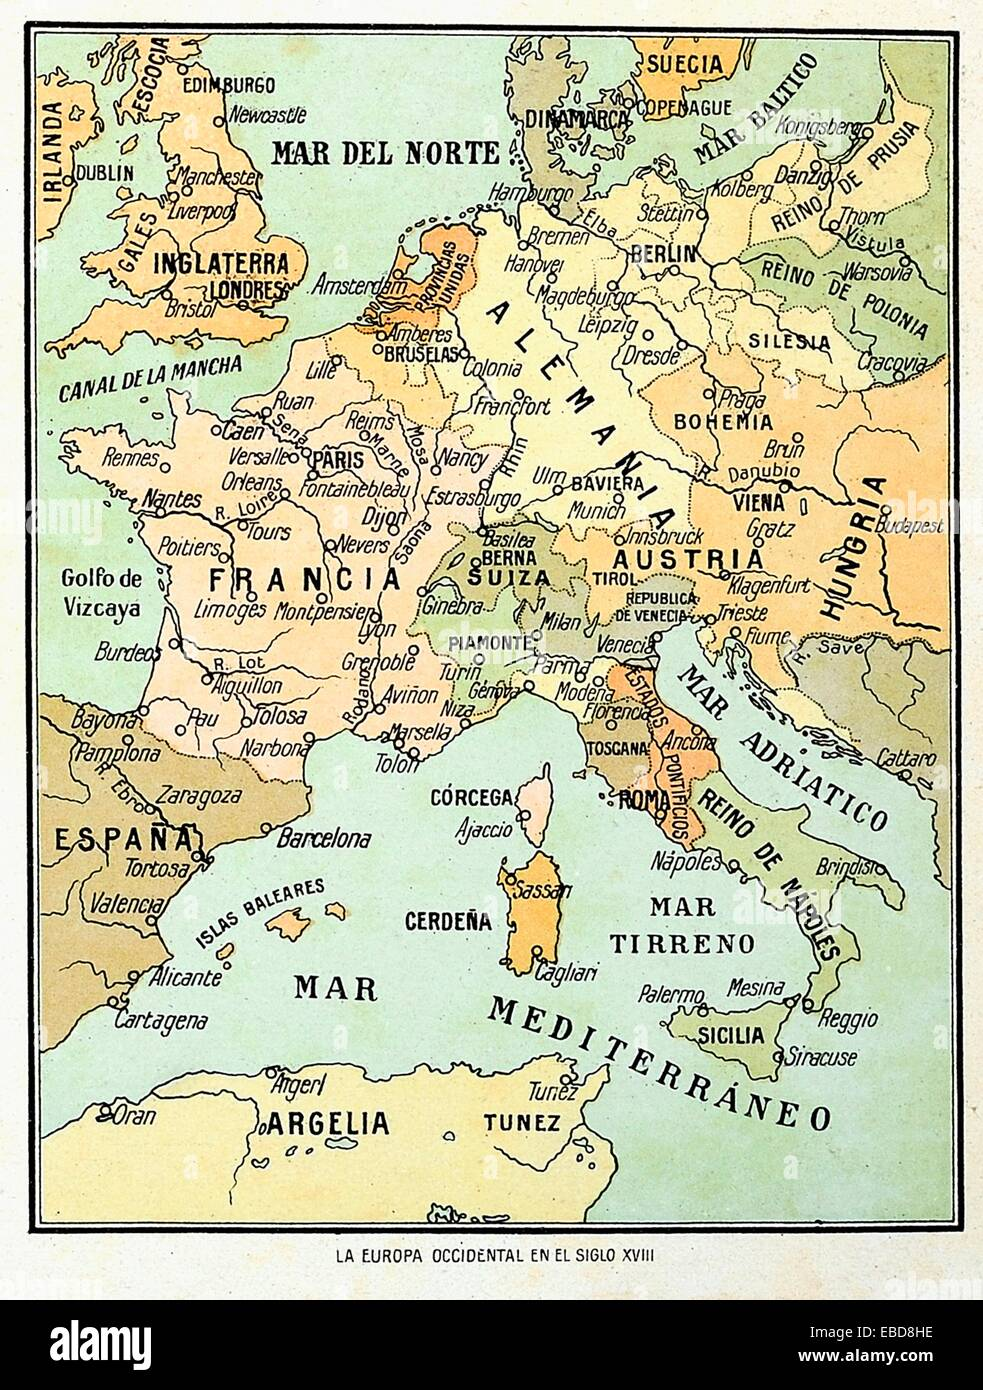 mid eighteenth century europe map Map of Western Europe in the 18th century Stock Photo   Alamy